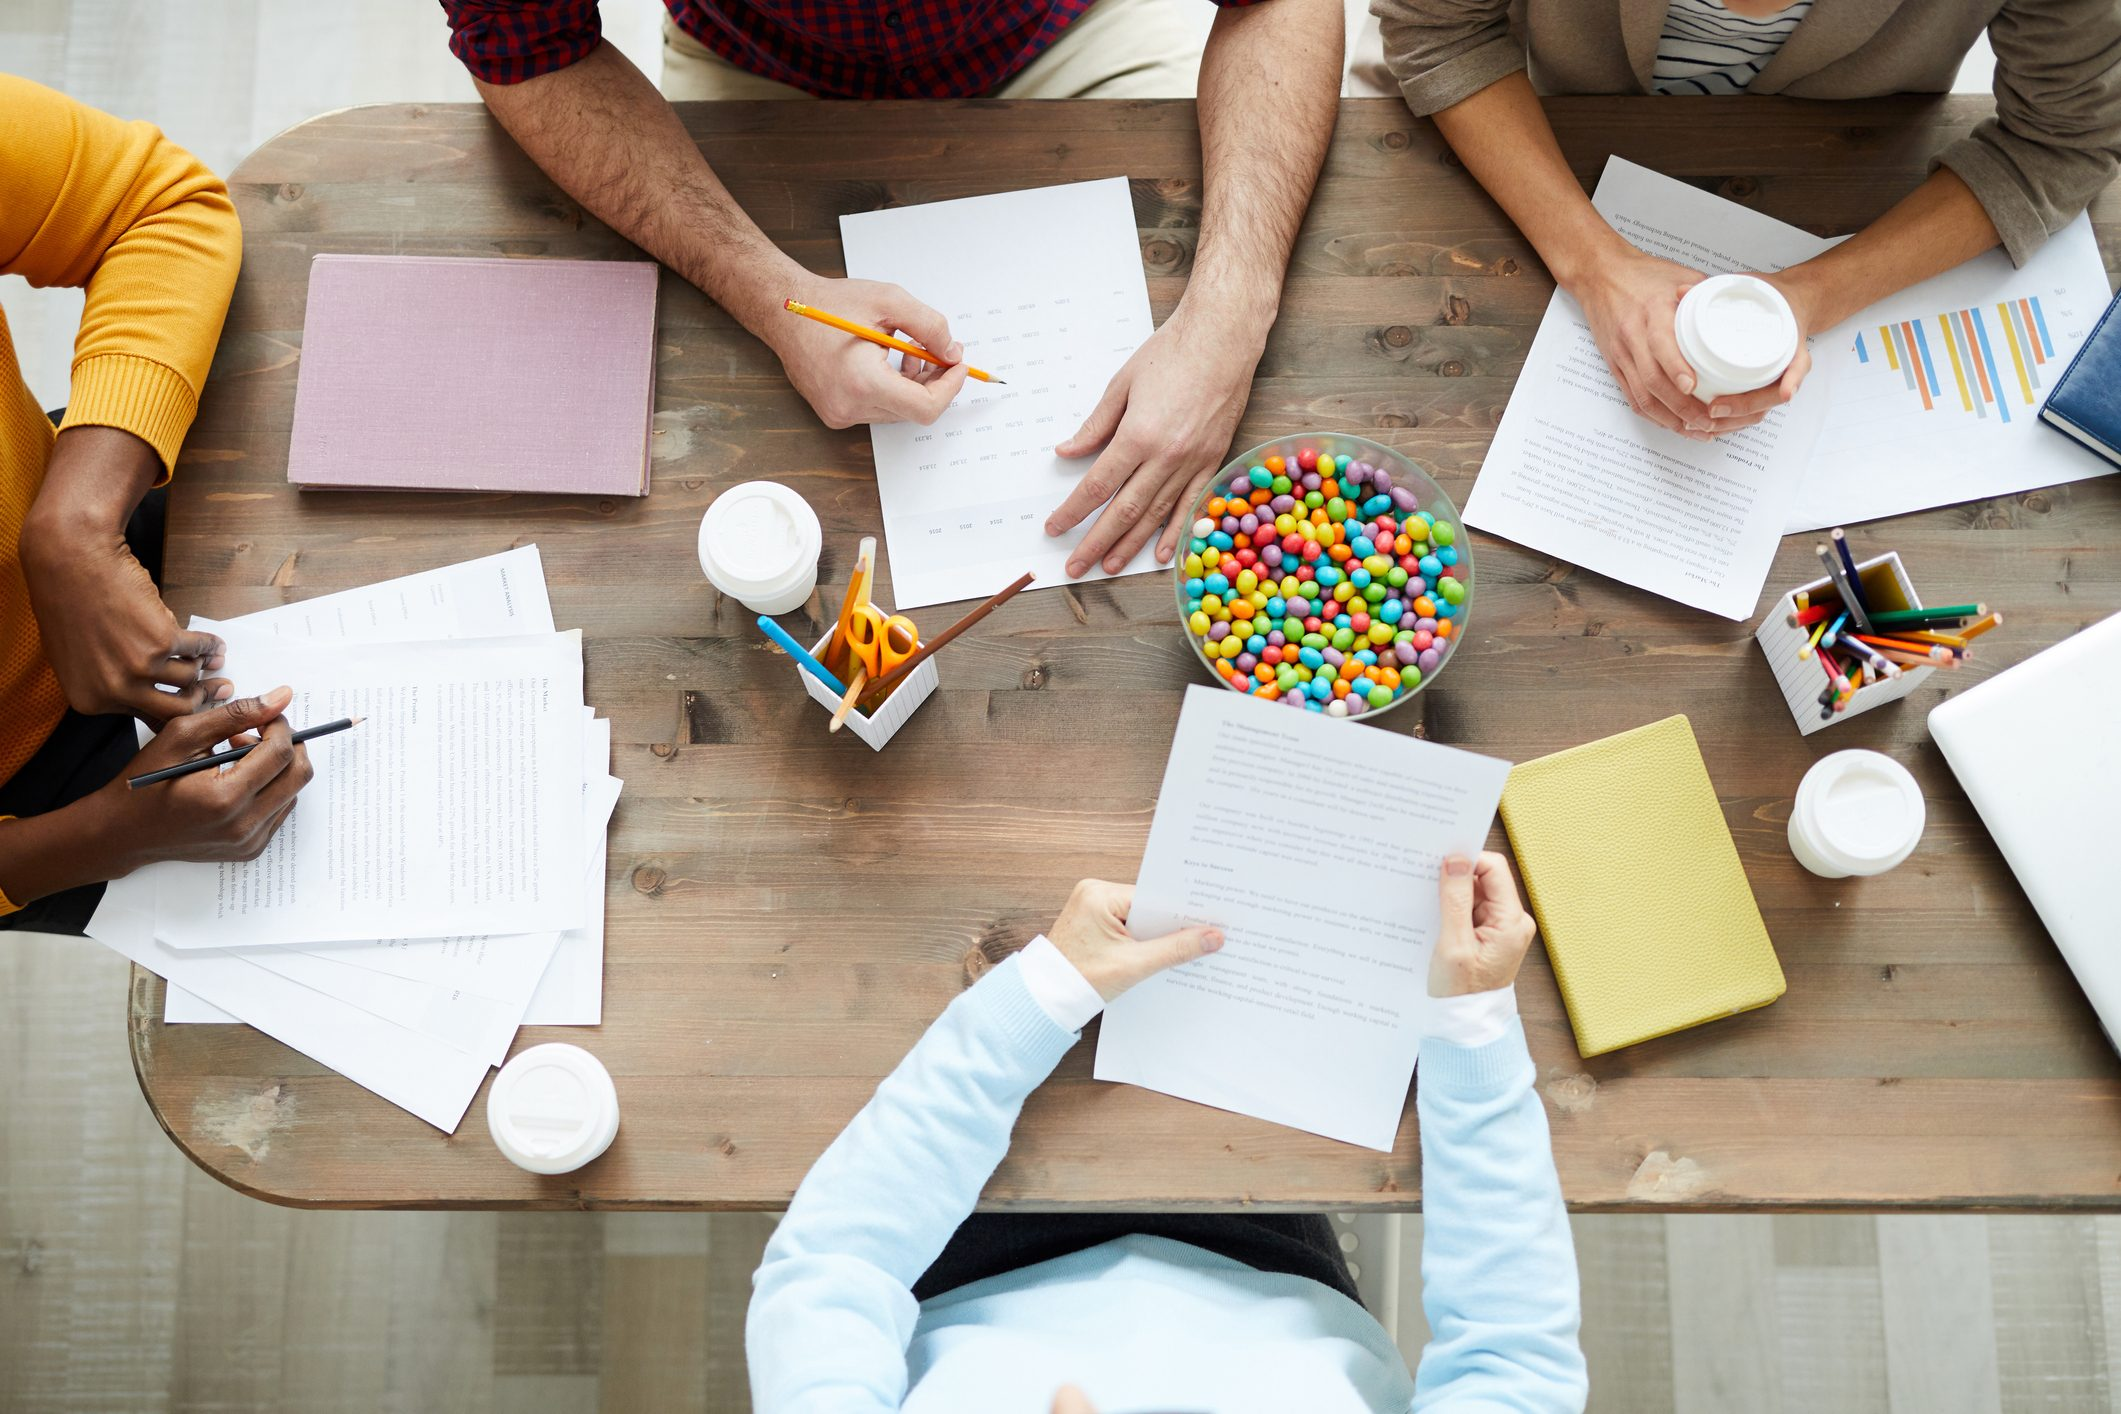 Directly above view of marketing specialists sitting at wooden table with papers and candies and discussing reports and charts